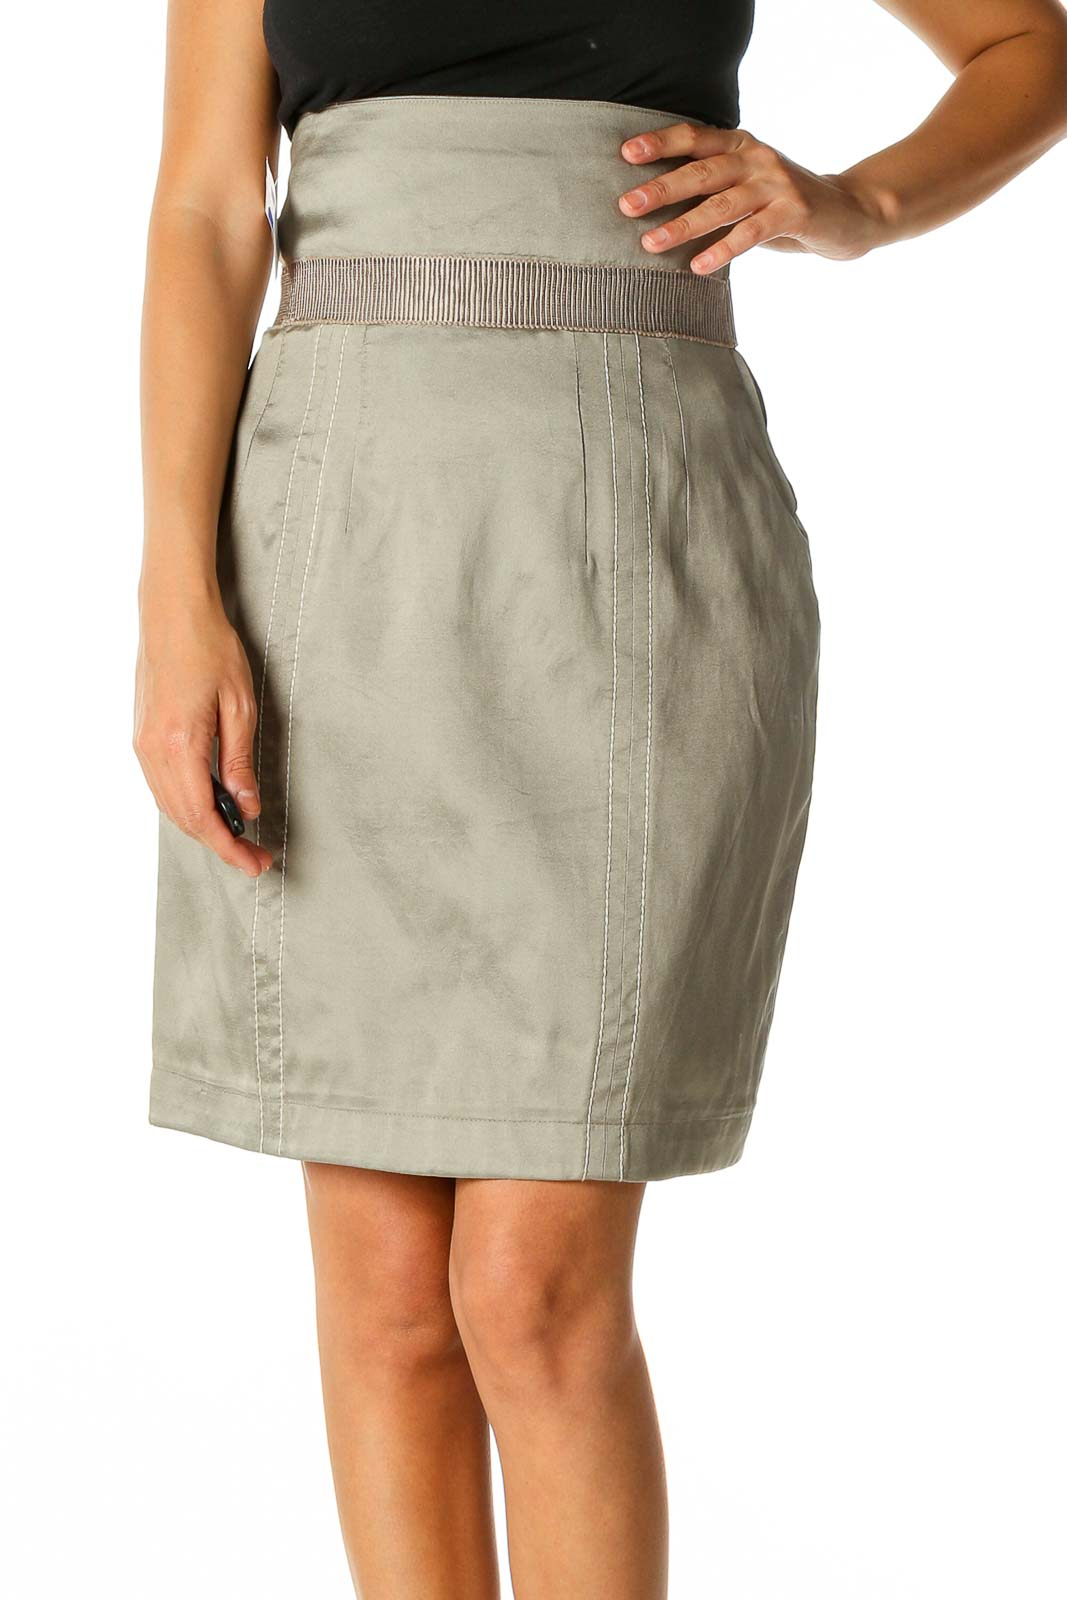 Beige Solid Chic Straight Skirt Front